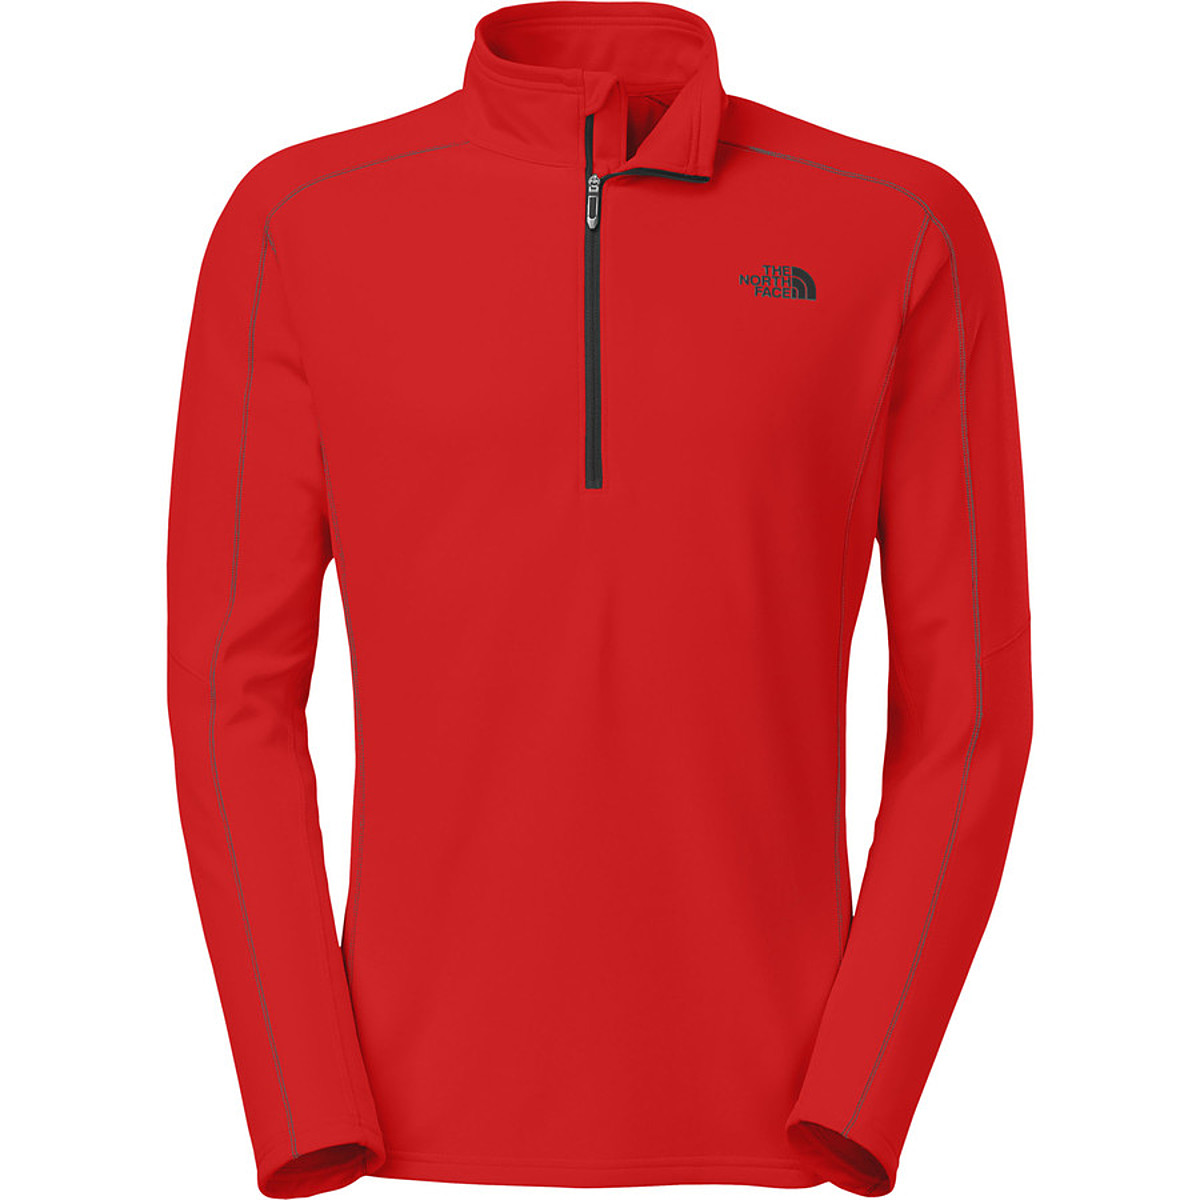 The North Face Stokes 1/4 Zip